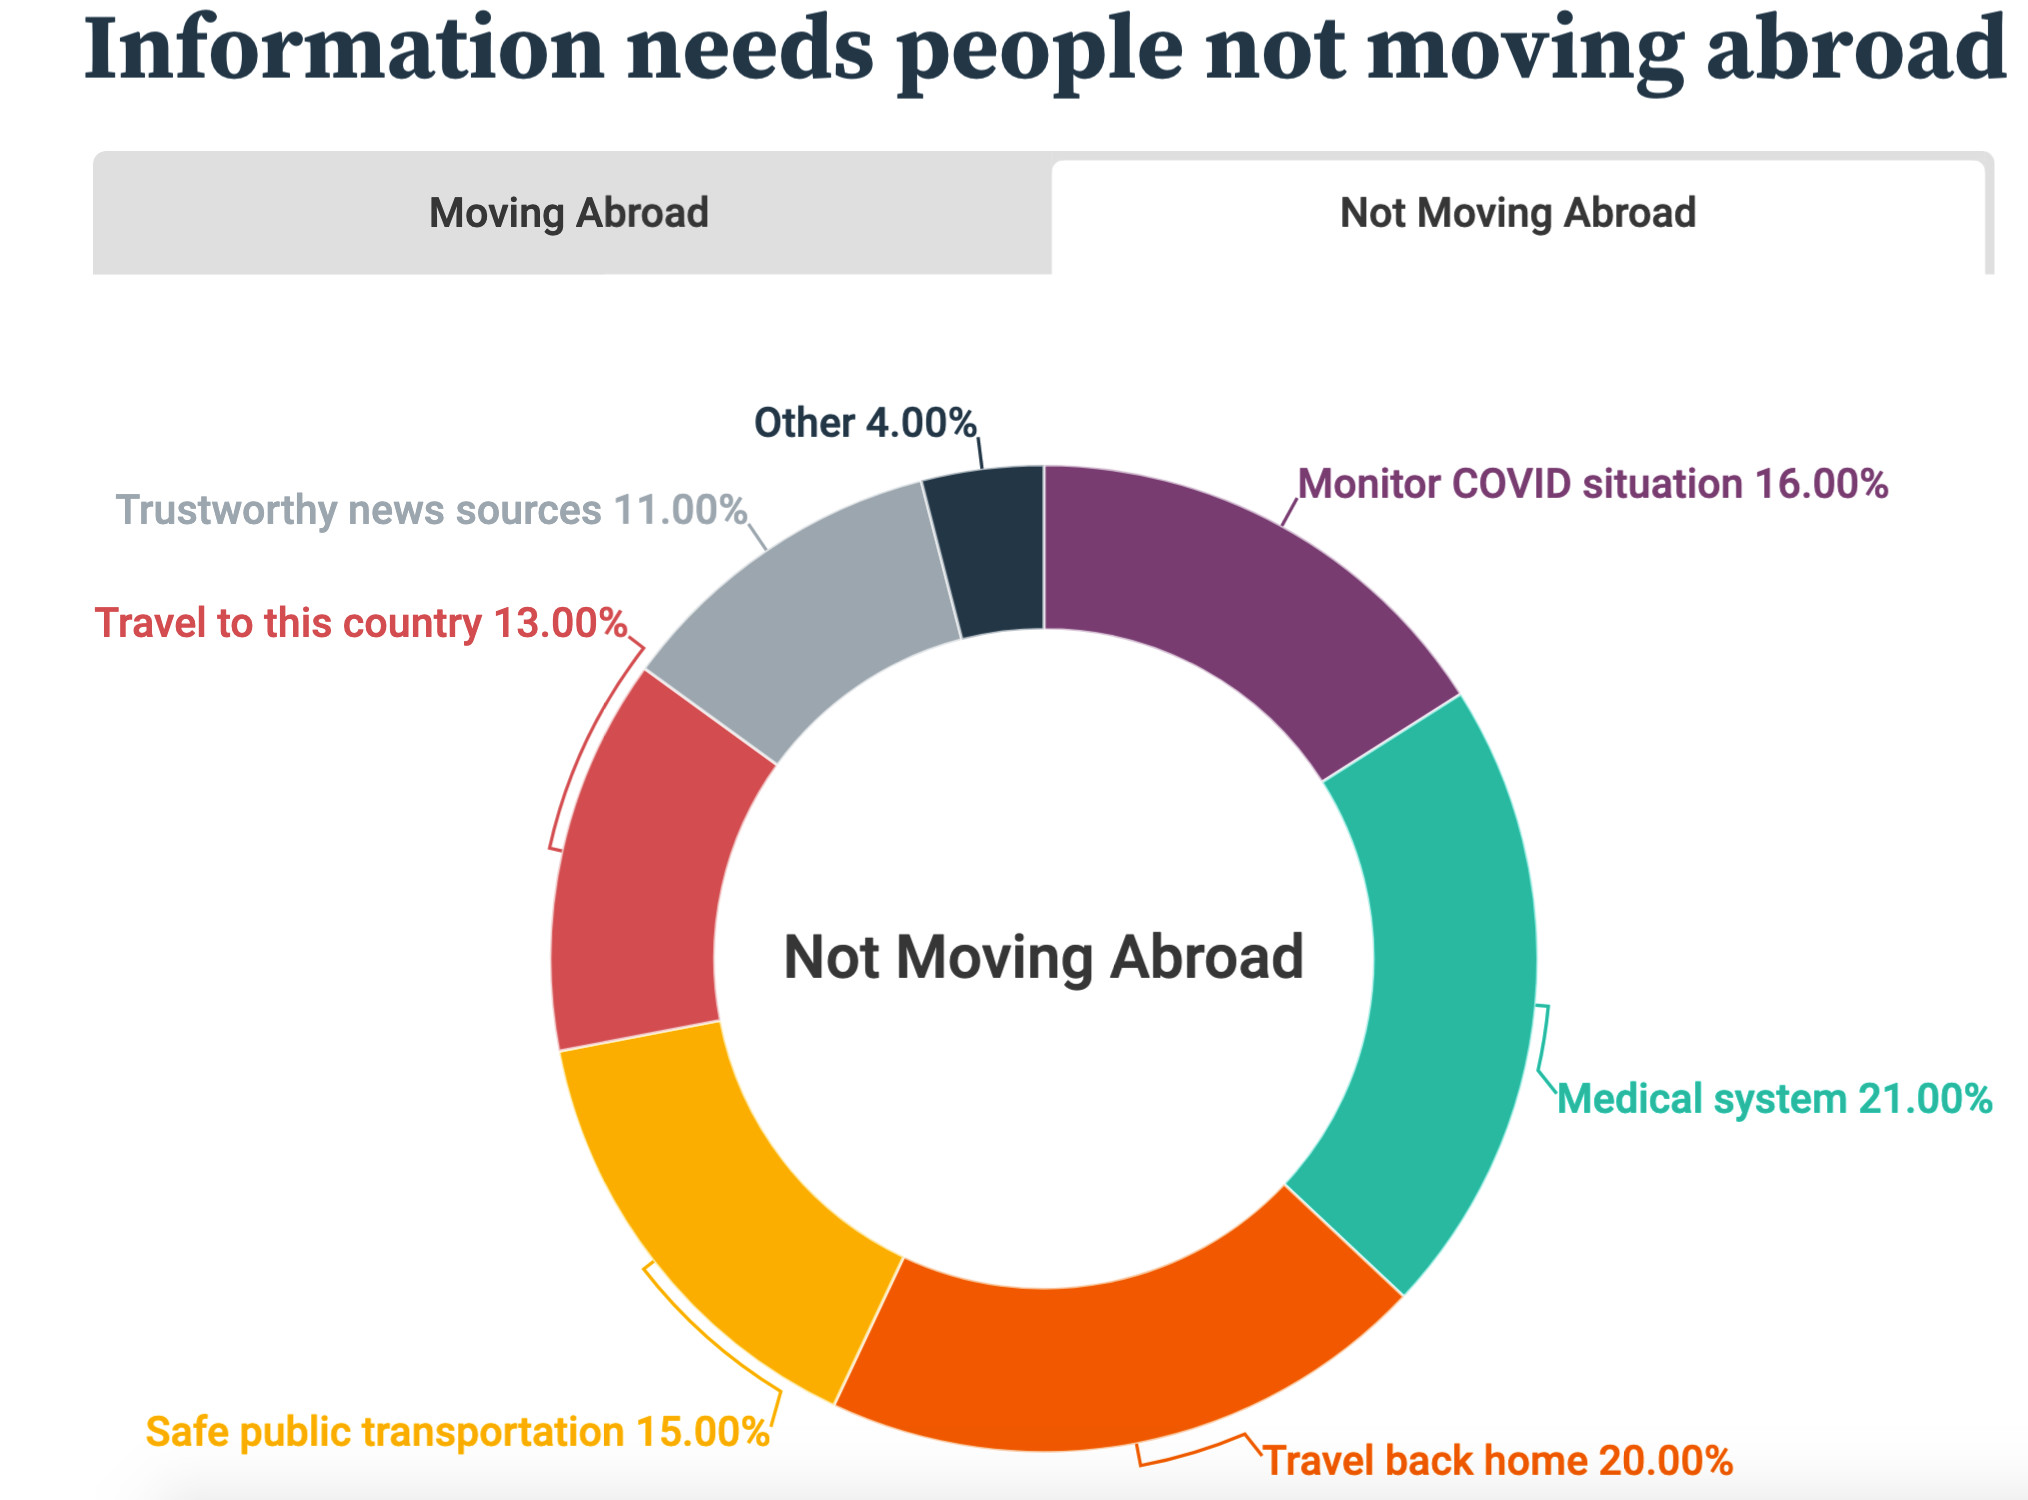 HousingAnywhere Information Need People Not Moving Abroad Survey September 2020